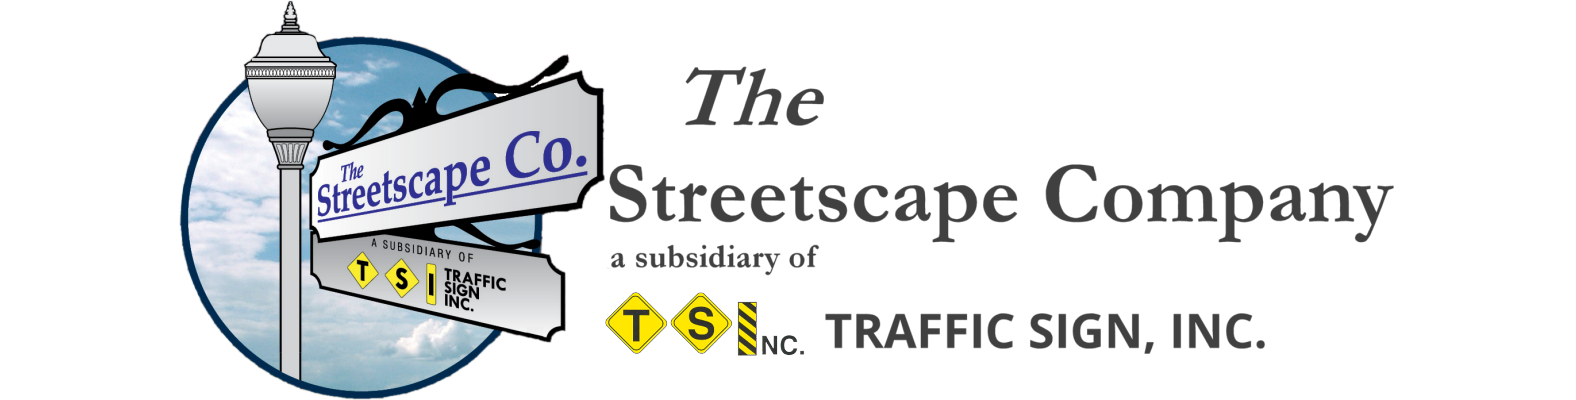 The Streetscape Company Retina Logo